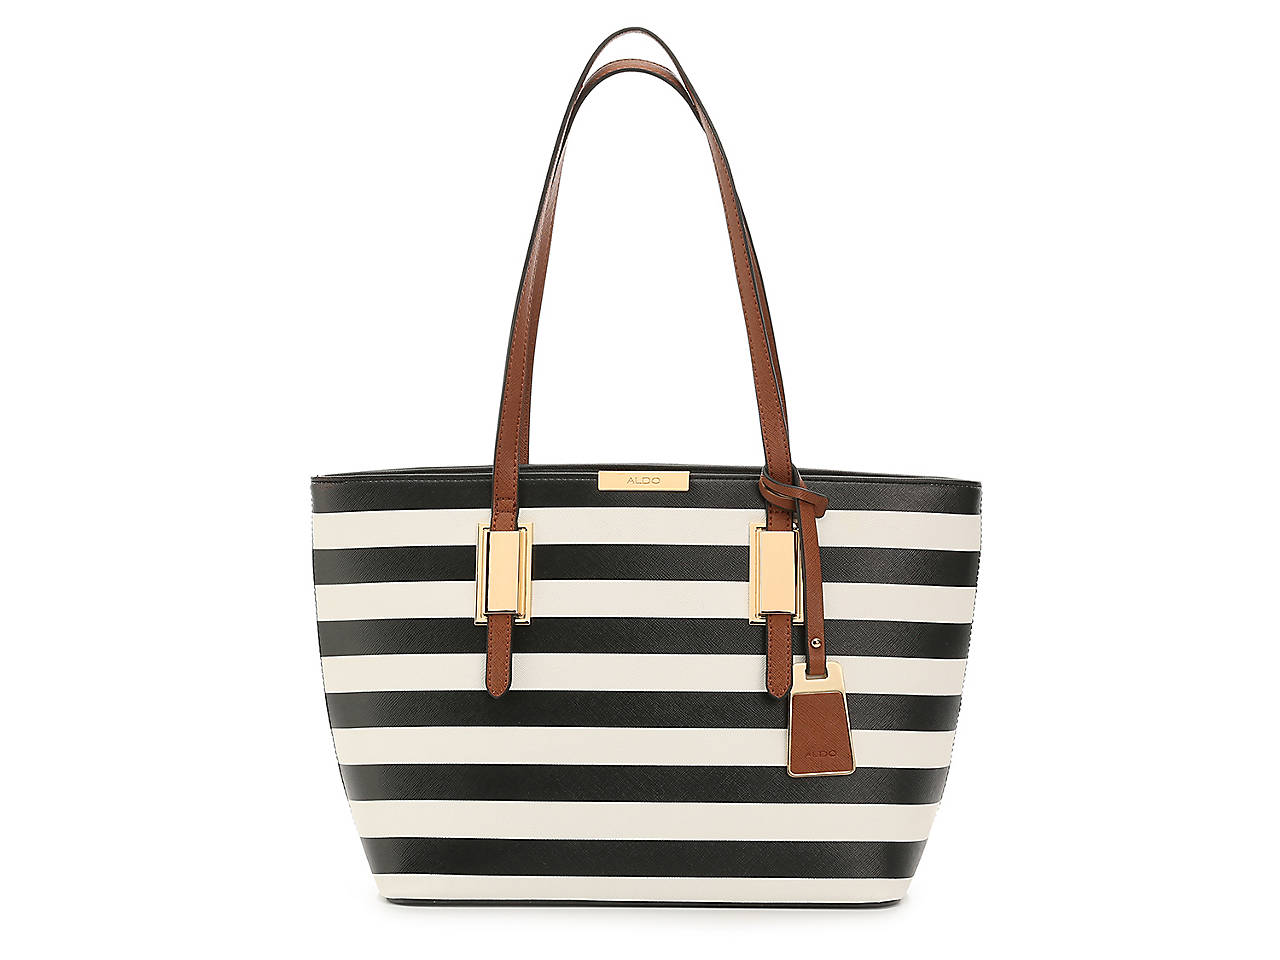 Afadollaa Tote black and white striped